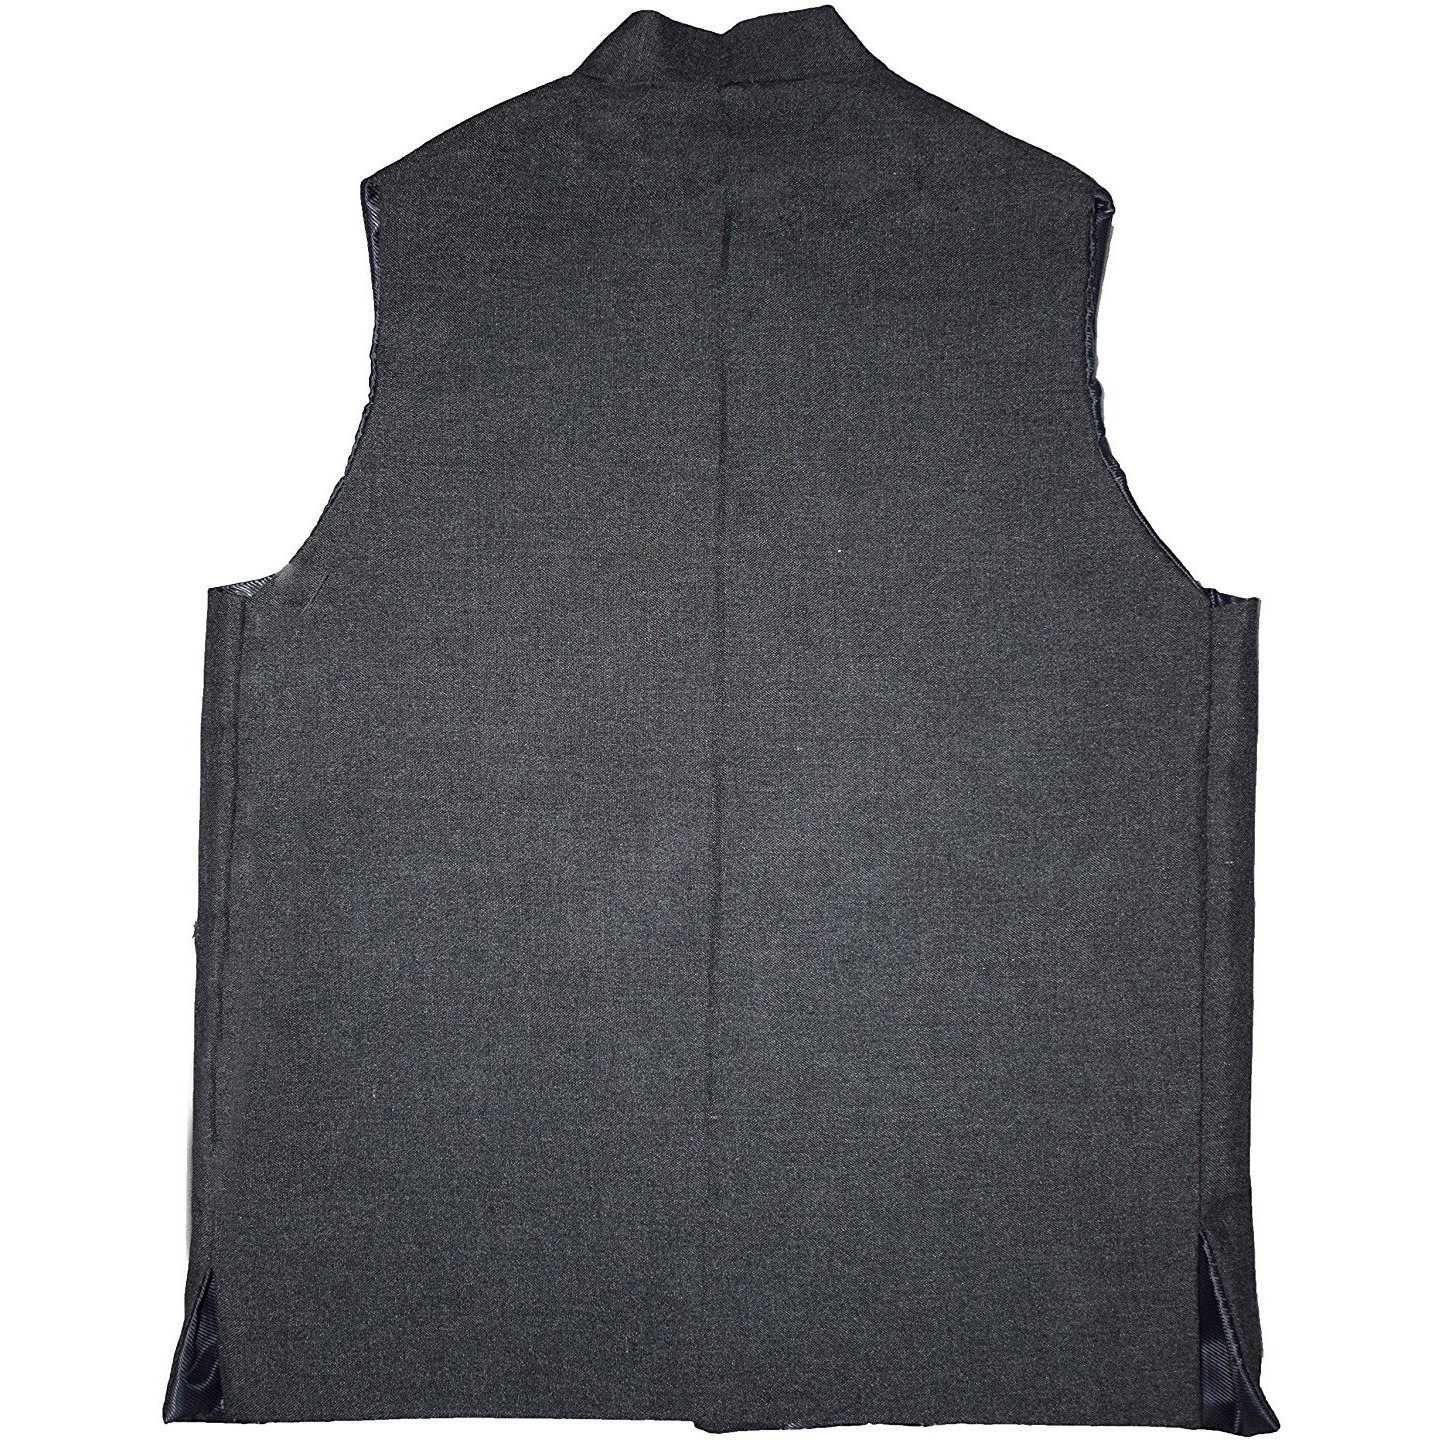 Men's 100% Cotton Jacket Festive Nehru Jacket Waistcoat